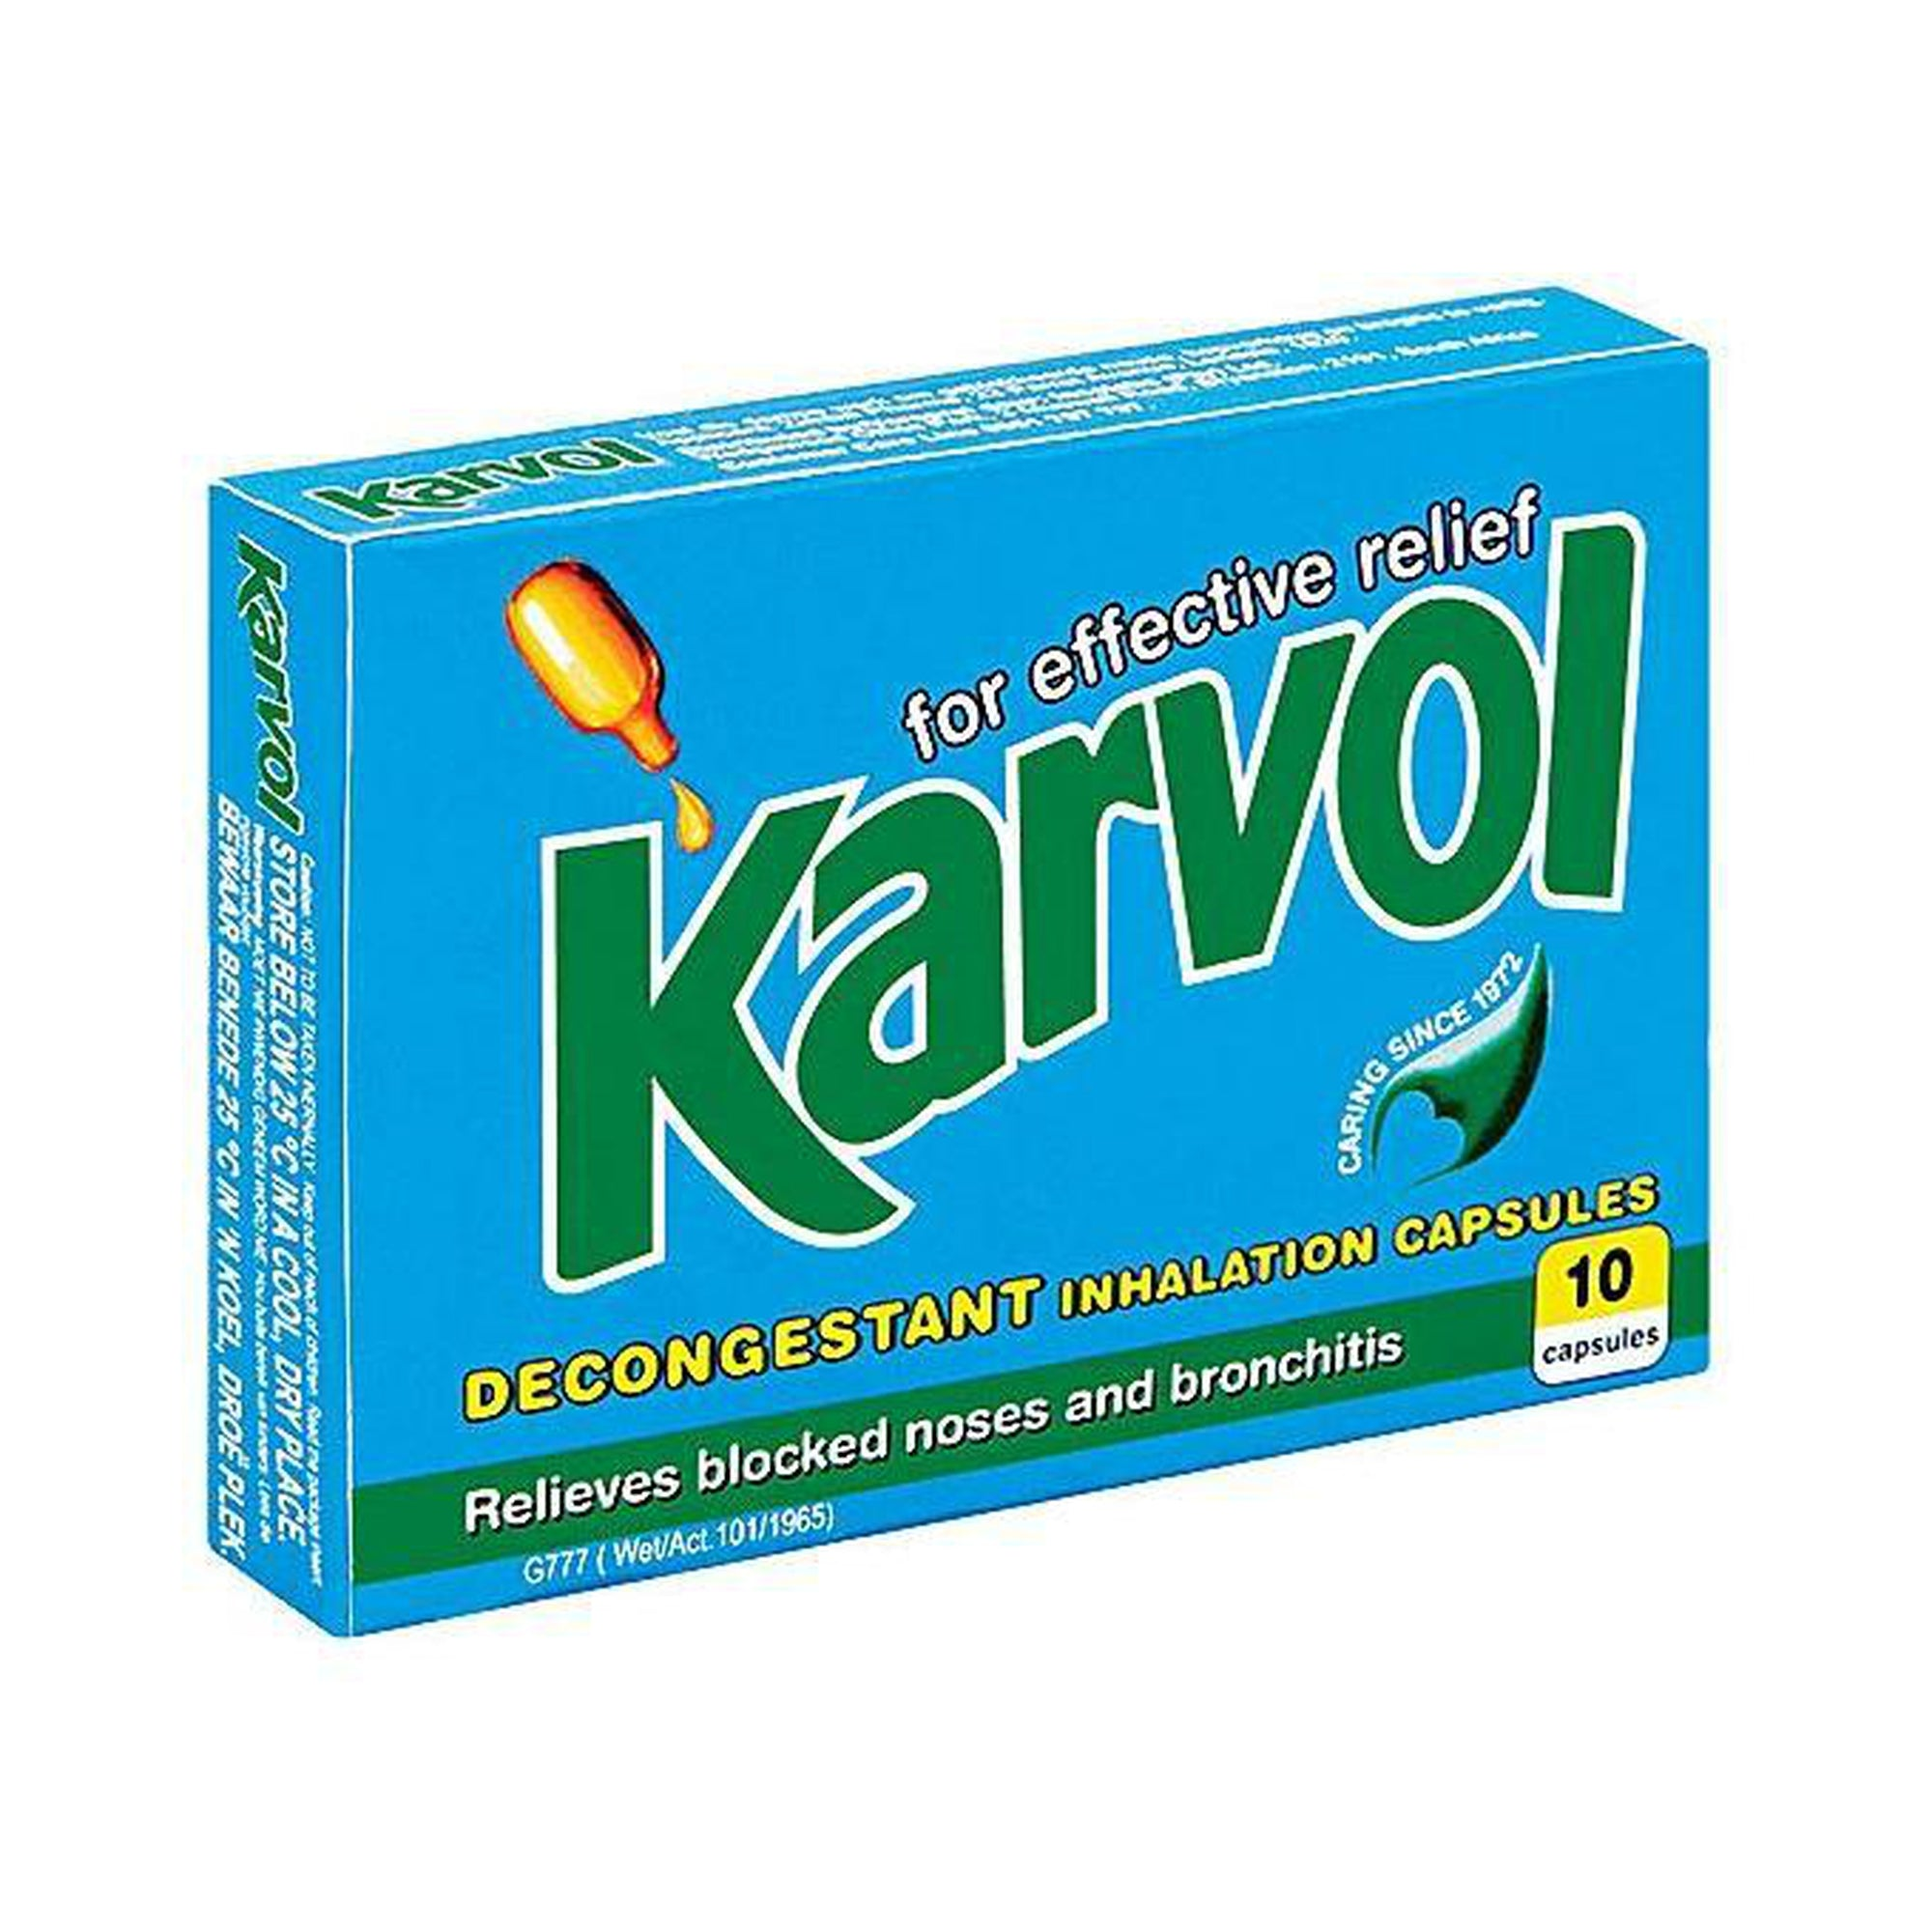 Karvol inhalation caps 10's-Mother and Baby Shop Kenya's #1 Online Baby Shop